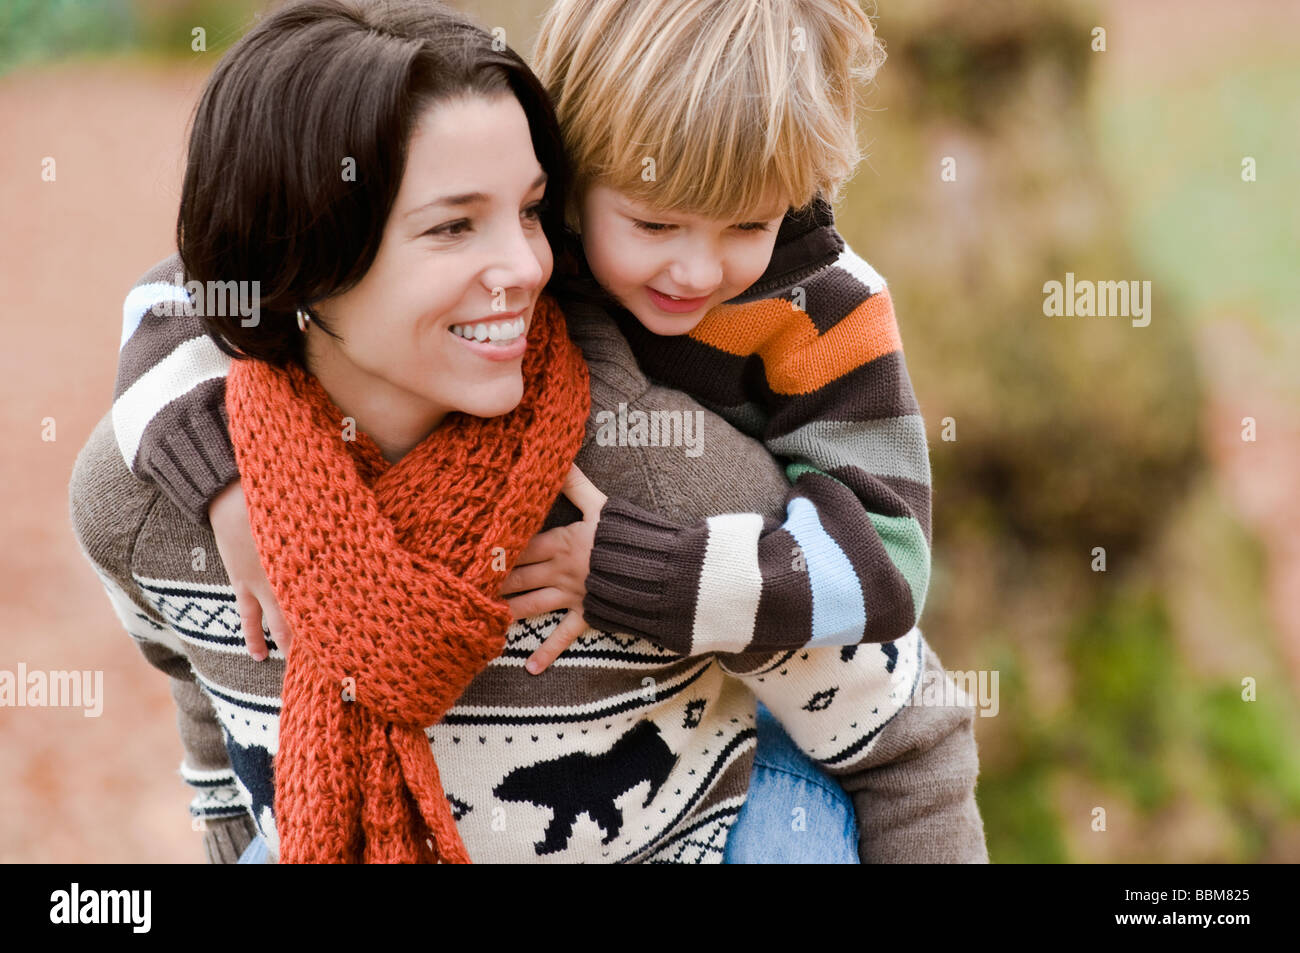 Young boy rides piggy back on woman's back in autumn, Vancouver, British Columbia - Stock Image